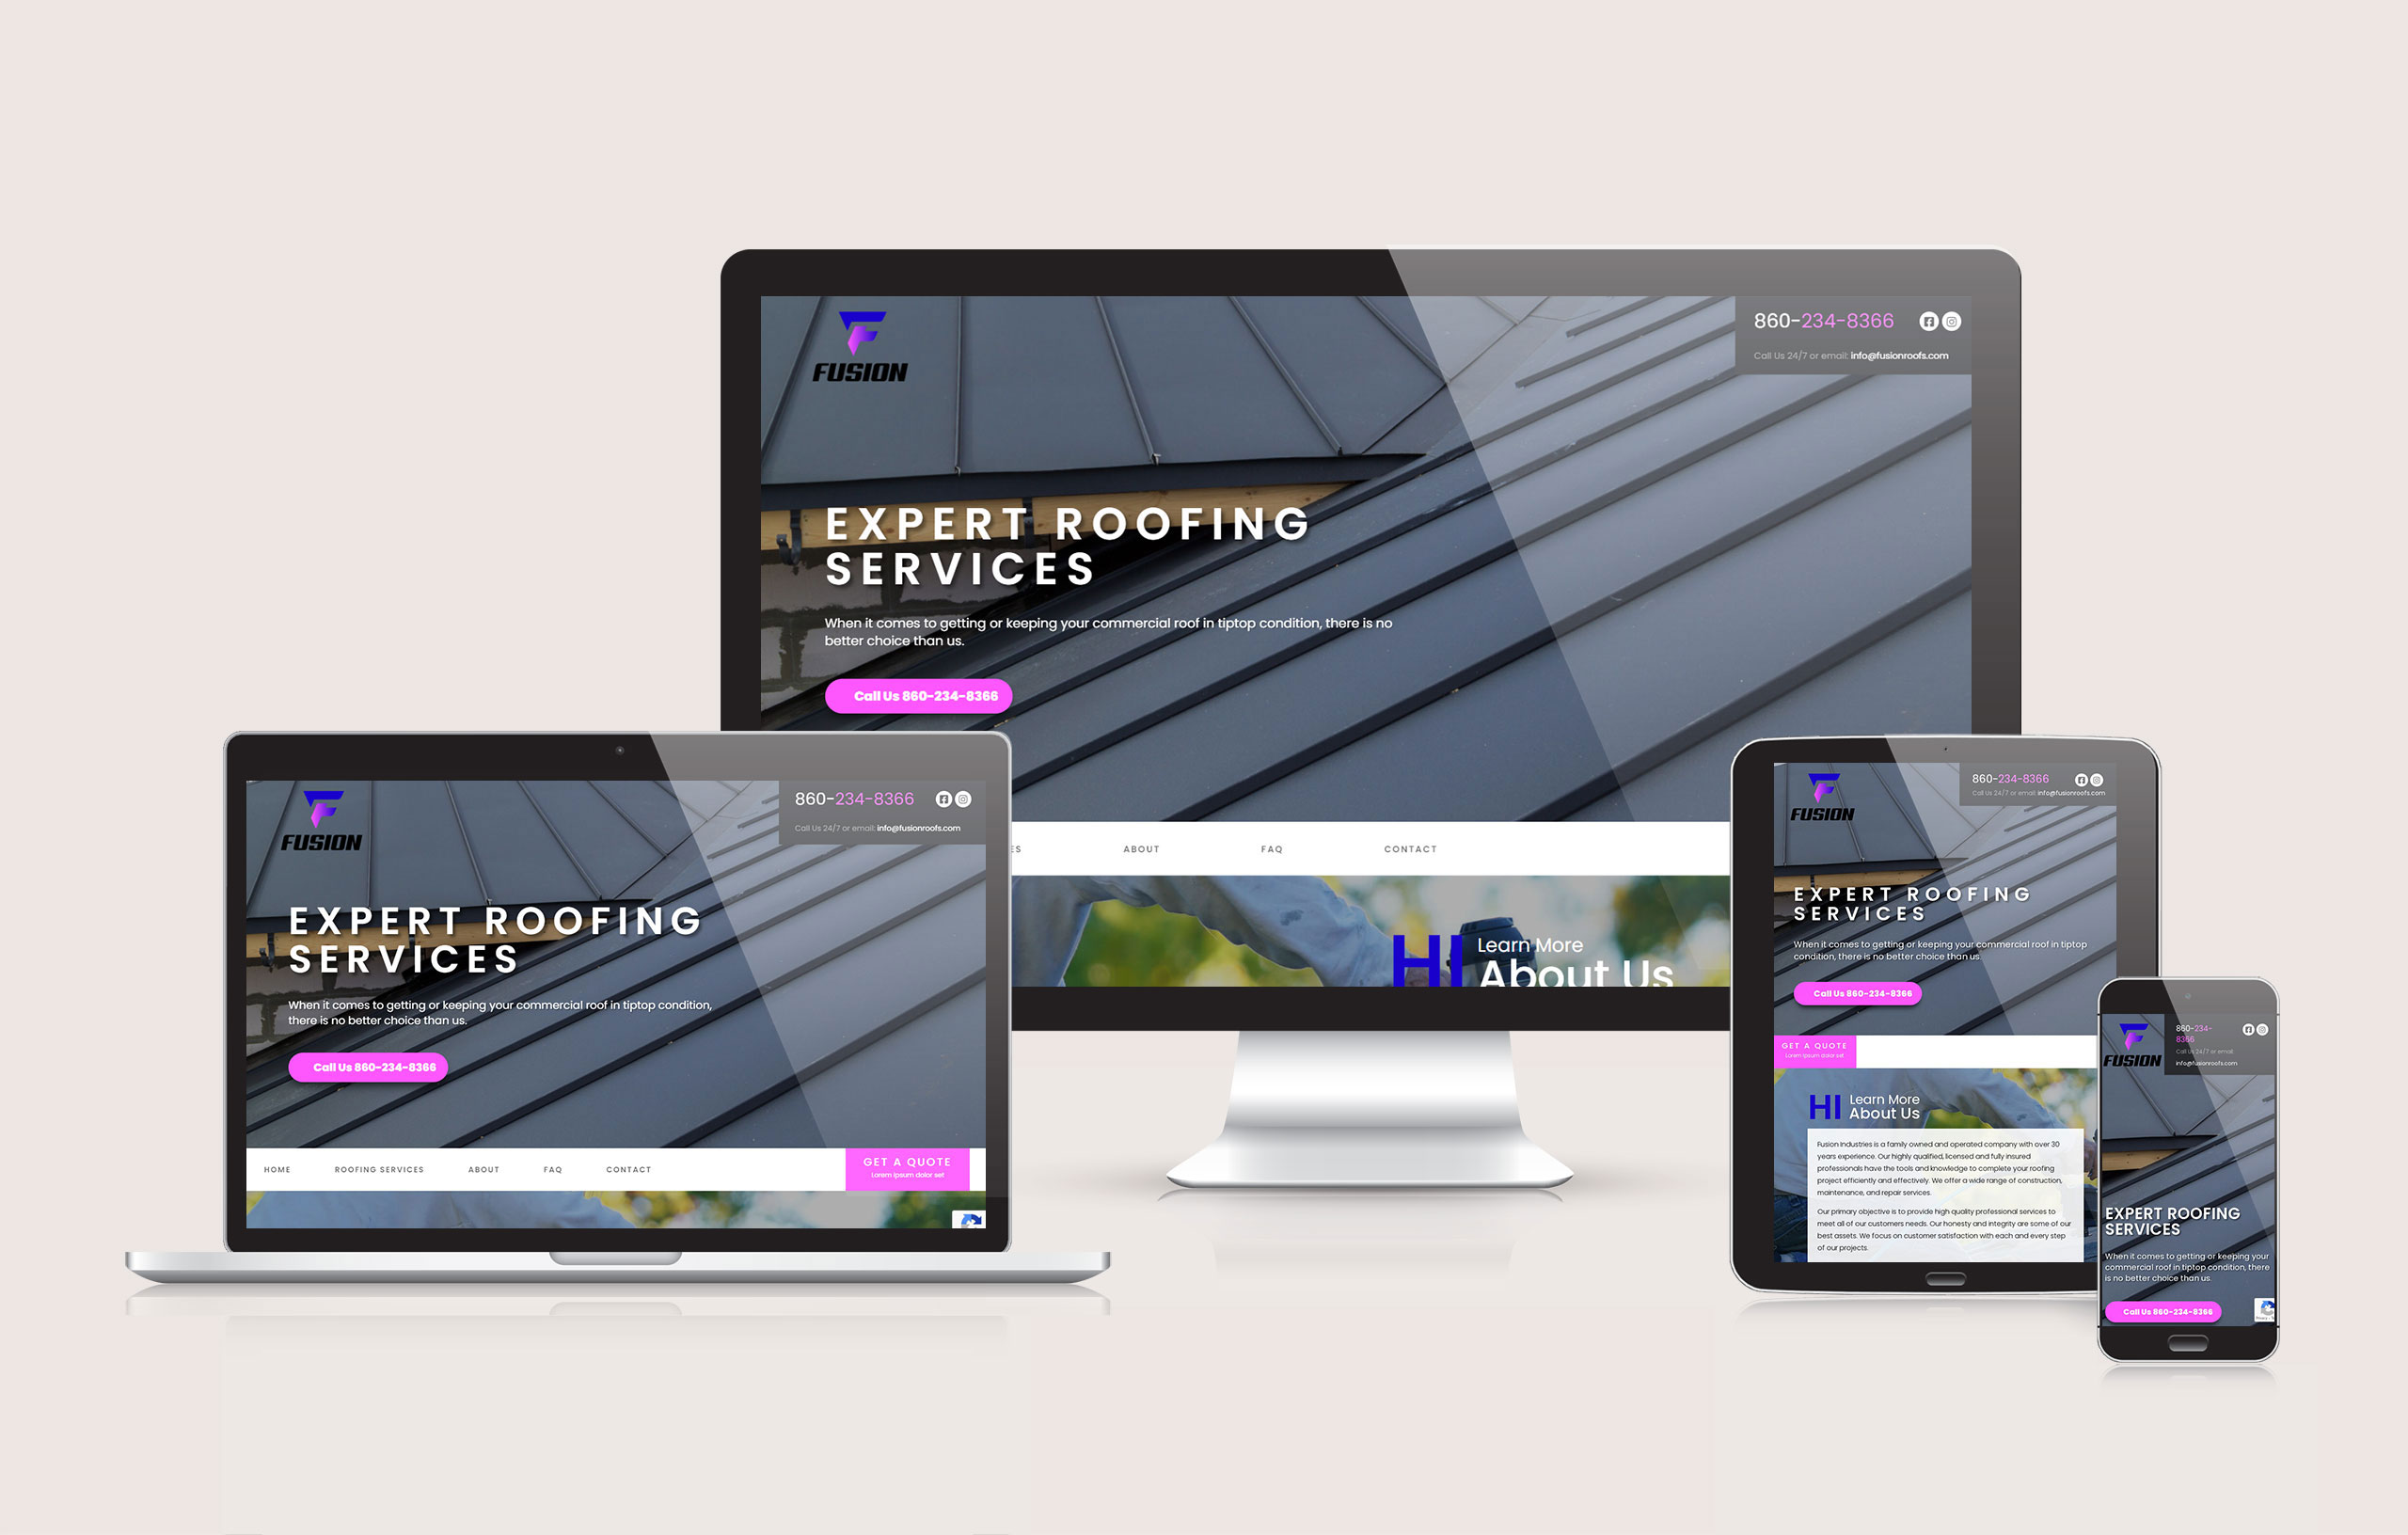 Fusion Roofs Responsive Image